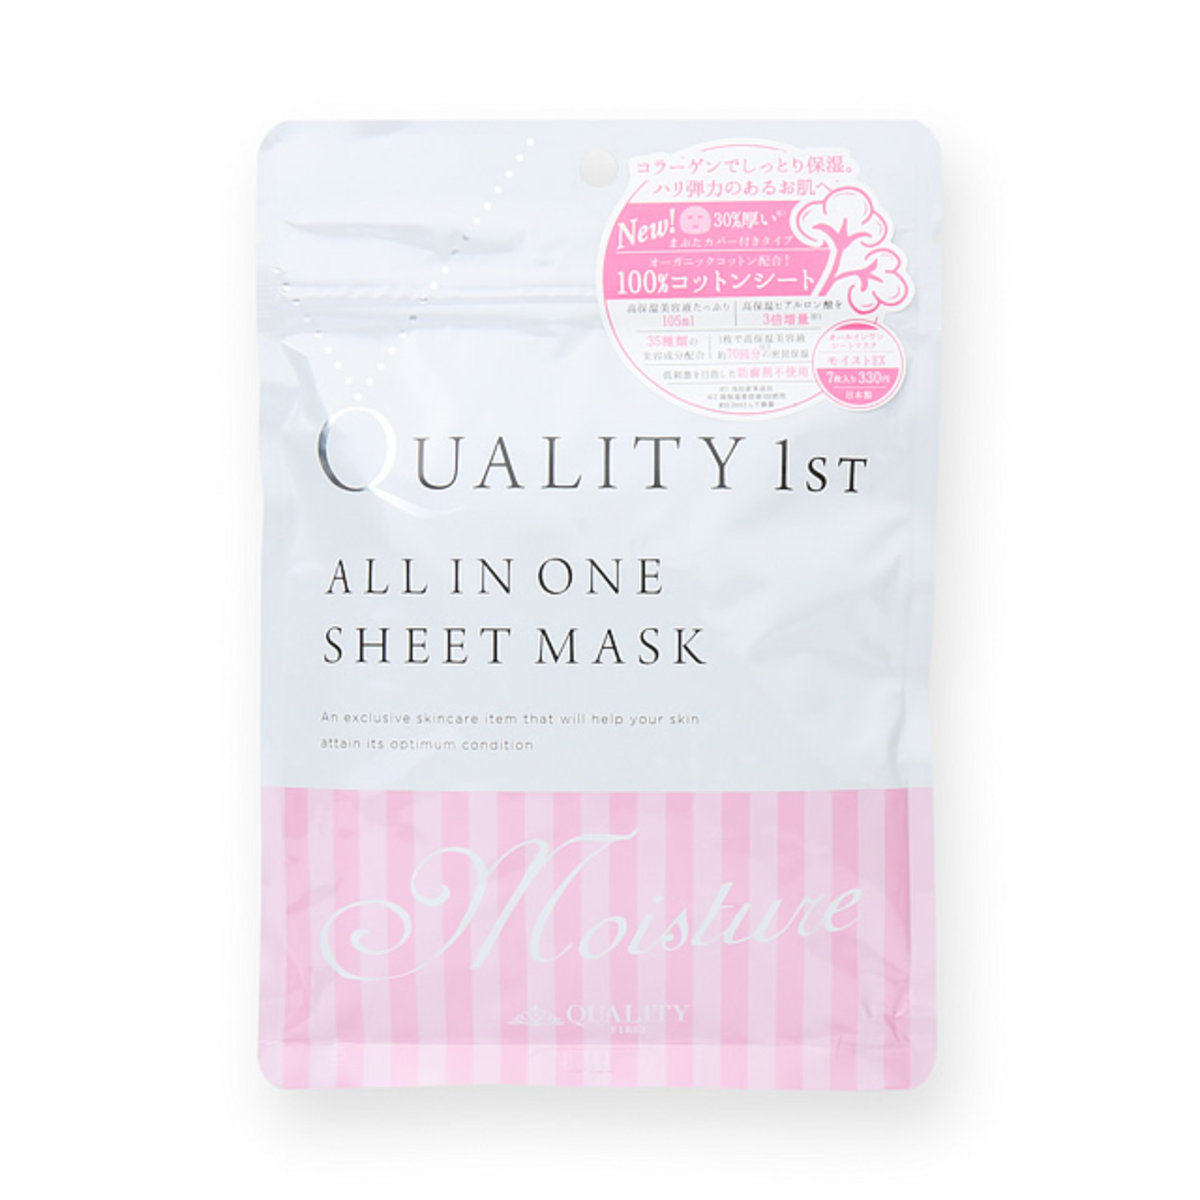 QUALITY FIRST ALL IN ONE Sheet Mask Pack Moisture Facial Mask 7PCS